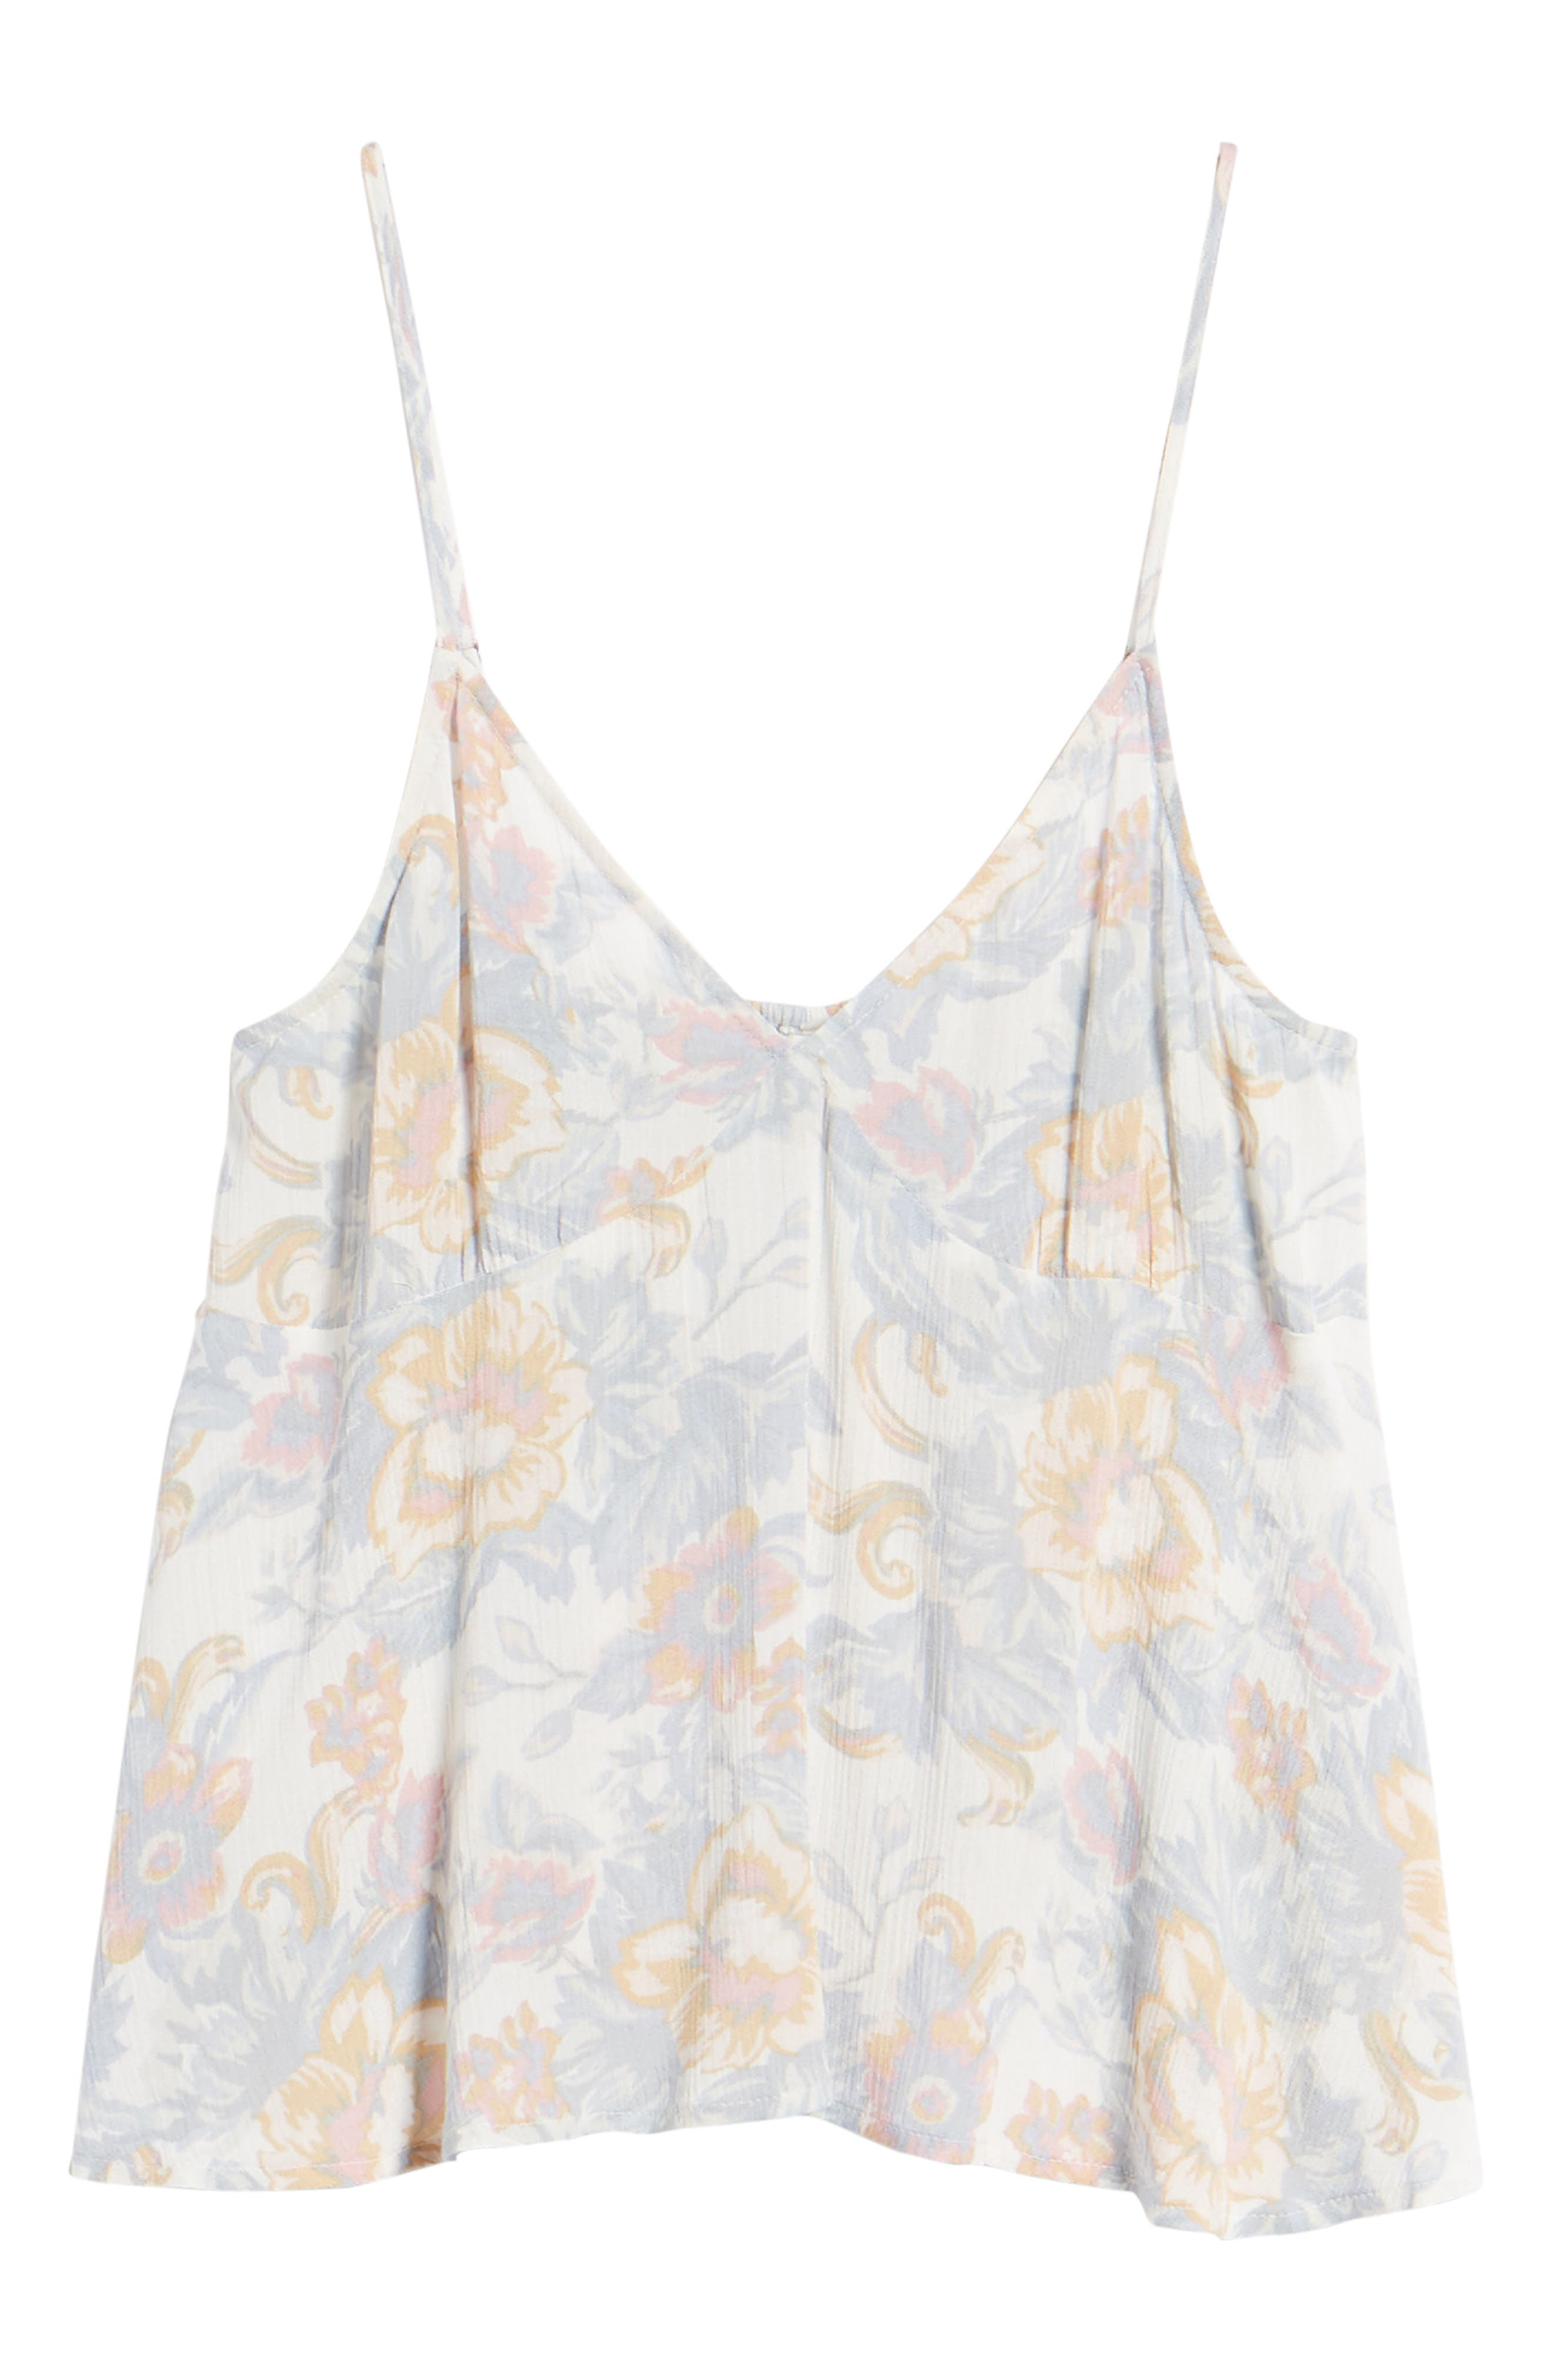 Print Babydoll Camisole,                             Alternate thumbnail 7, color,                             Ivory Egret Tapestry Floral